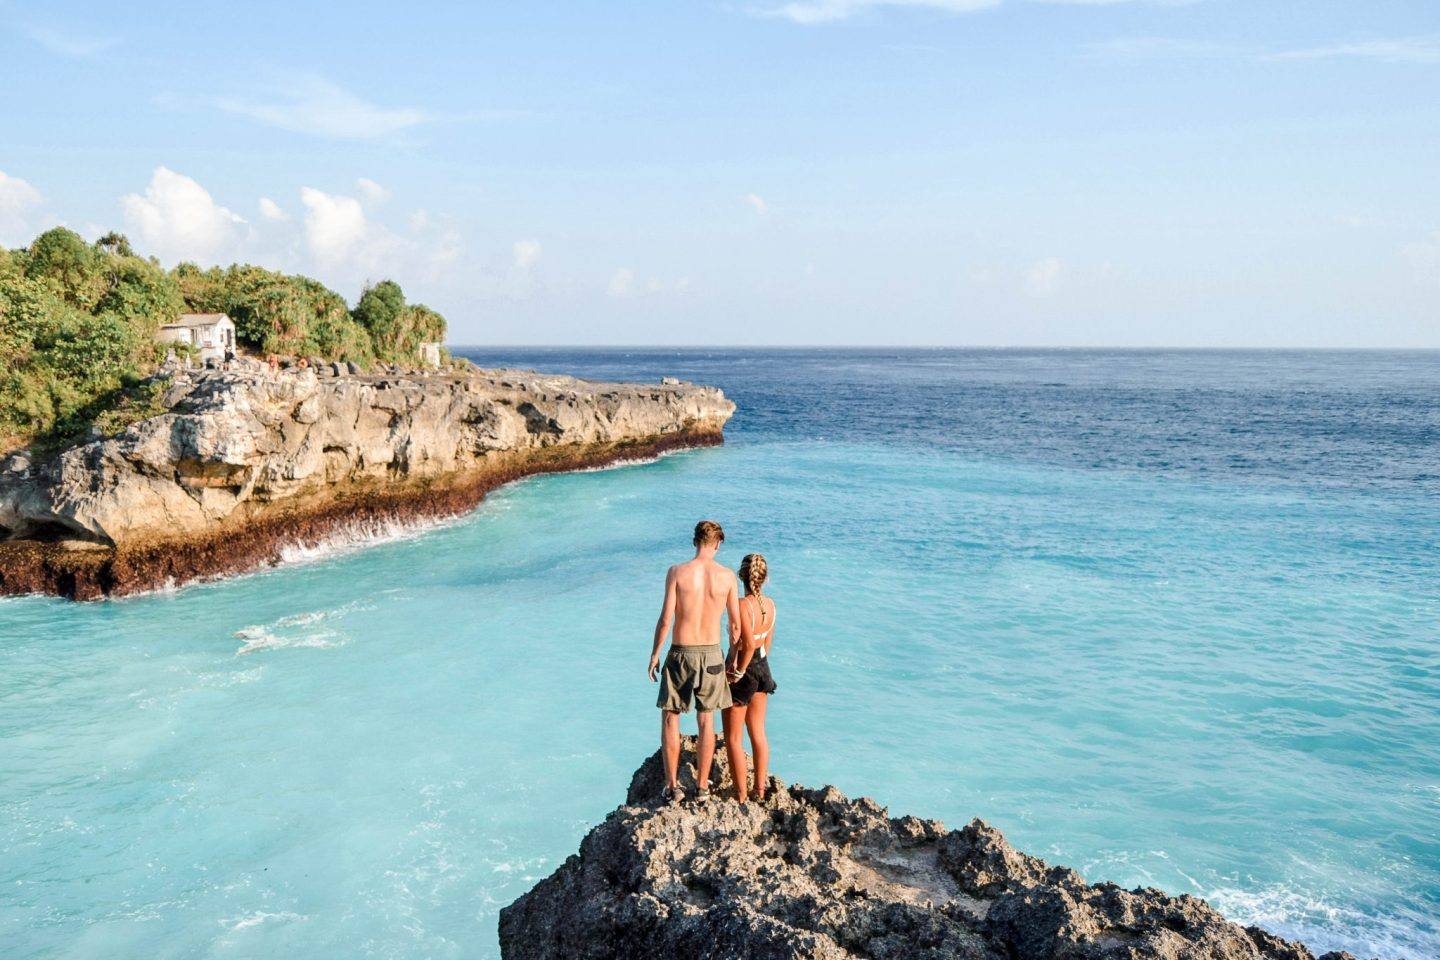 Wanderers & Warriors - Charlie & Lauren UK Travel Couple - Blue Lagoon Nusa Ceningan Bali - Blue Lagoon Bali - Cliff Jumping Nusa Ceningan - Blue Lagoon Nusa Lembongan - Cliffs In Nusa Ceningan - things to do in nusa Lembongan - things to do in nusa ceningan